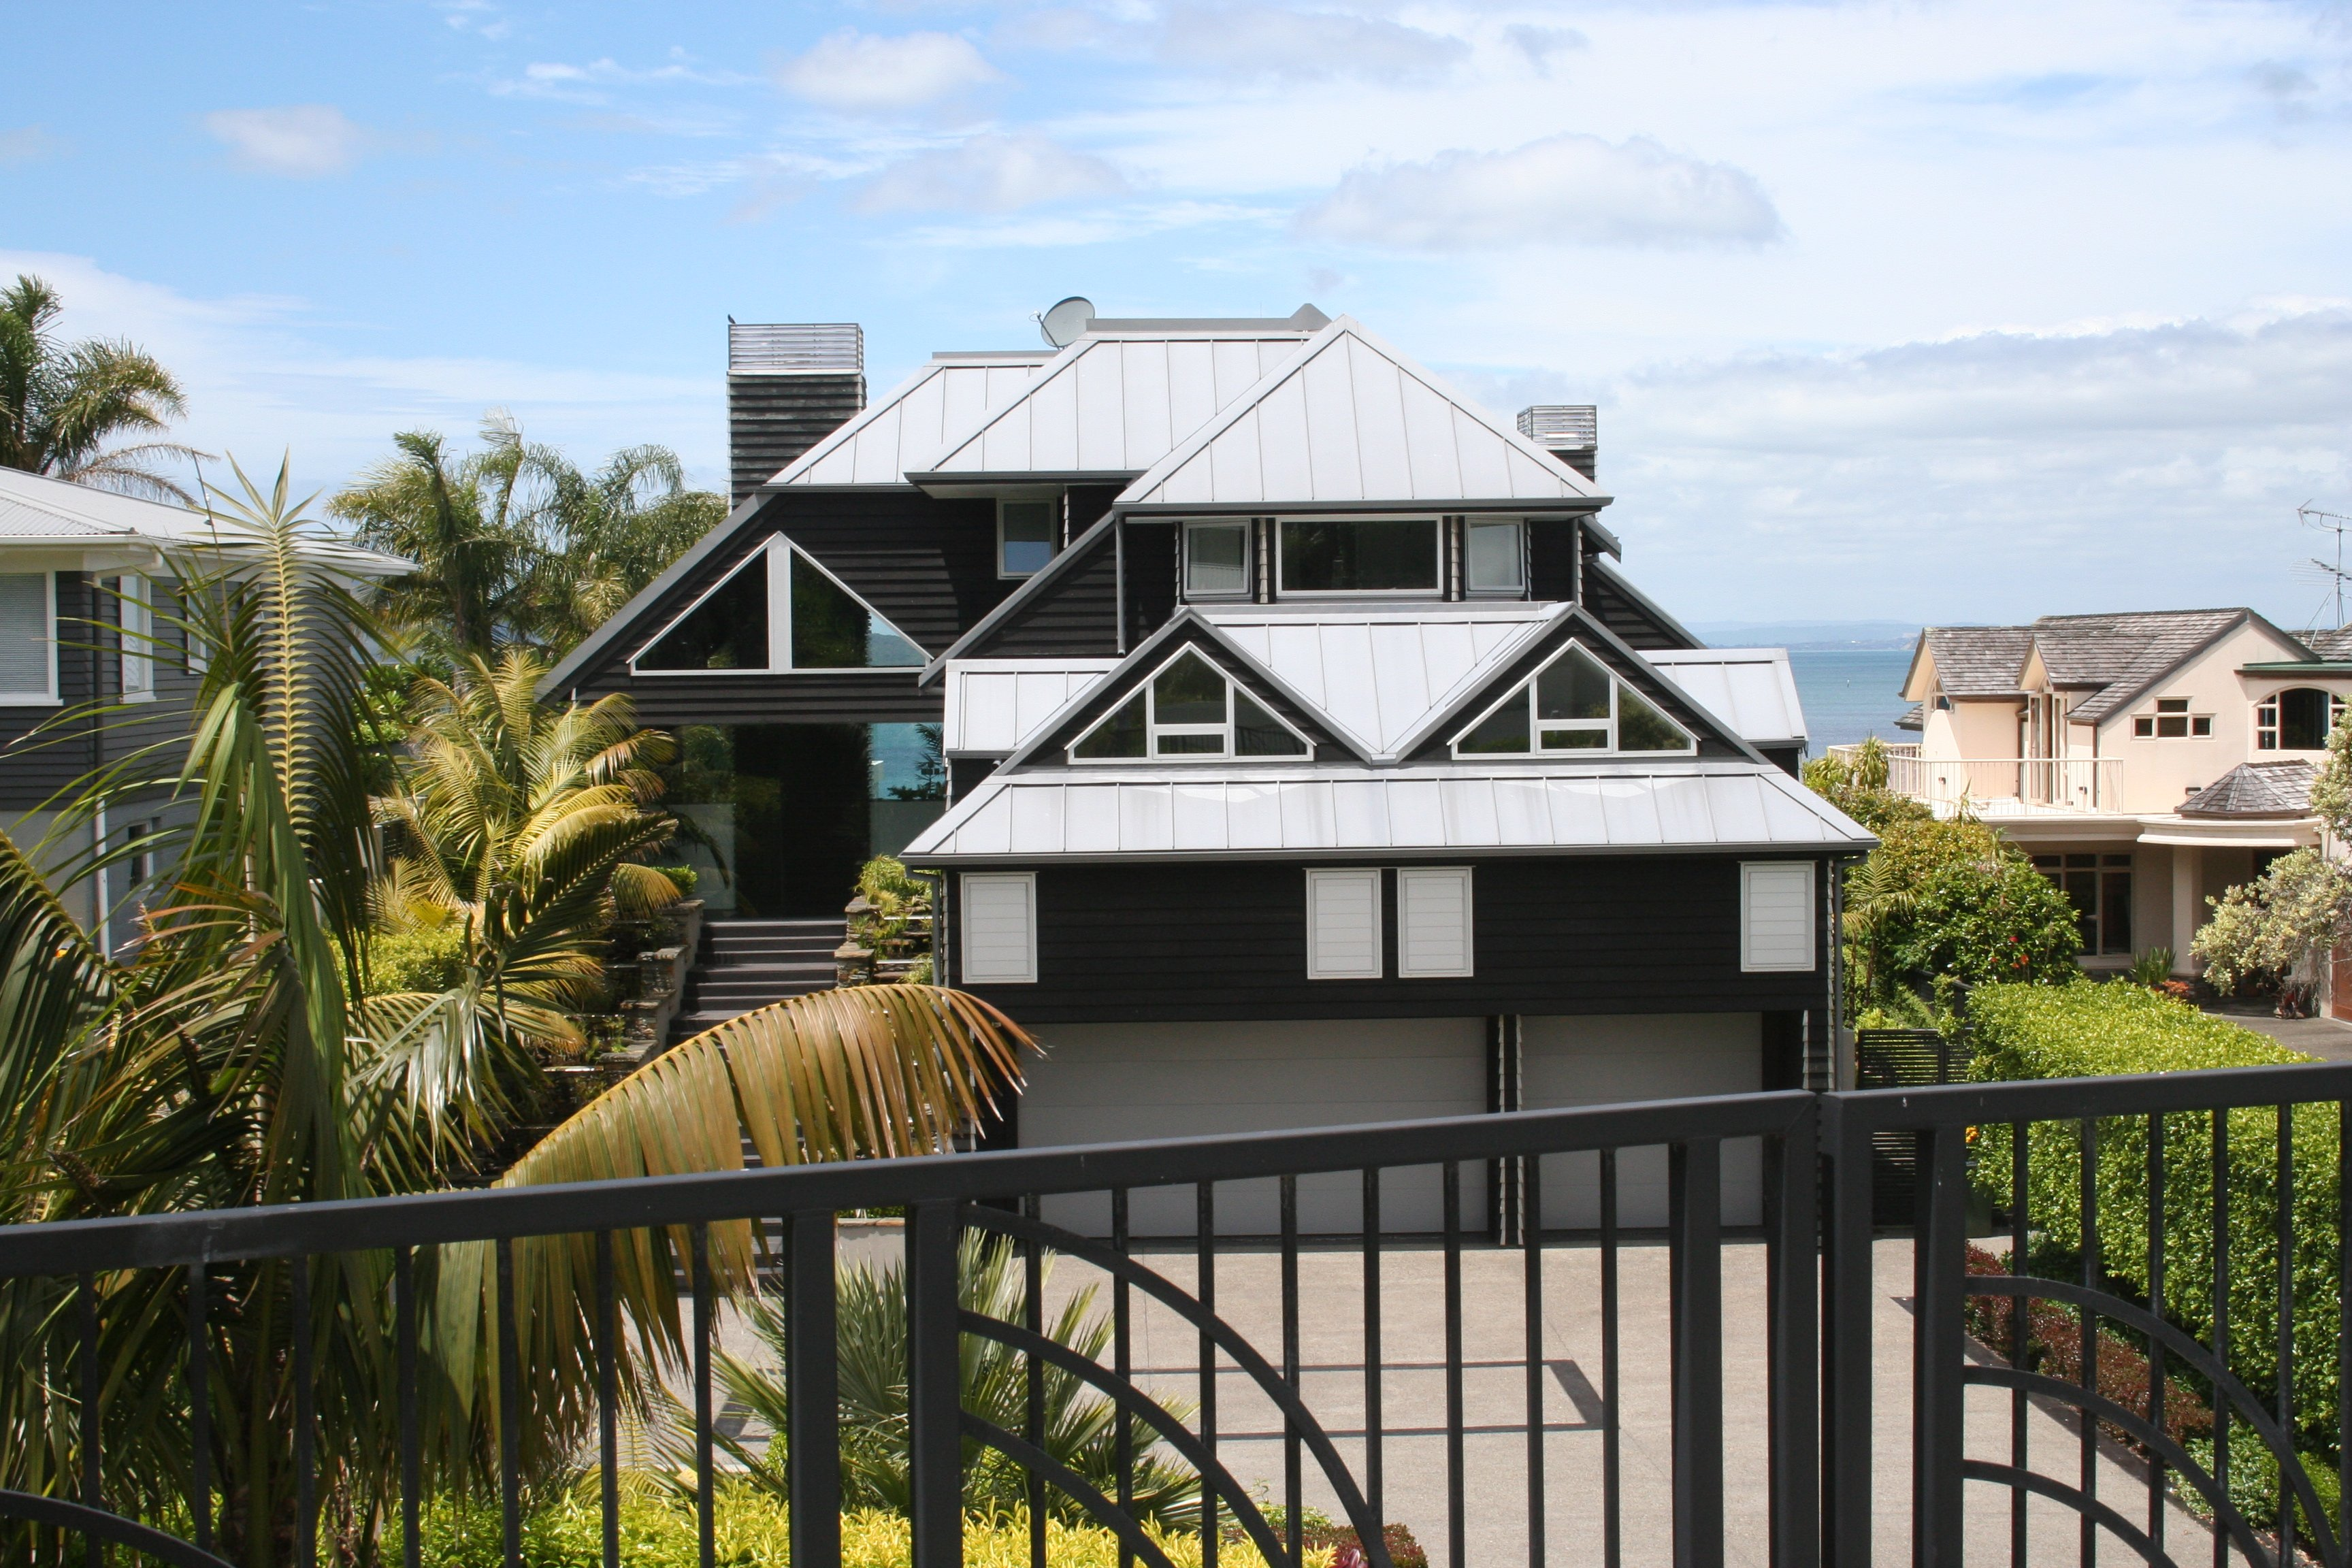 Beautiful residential architecture designed by Delamare Architects in Auckland